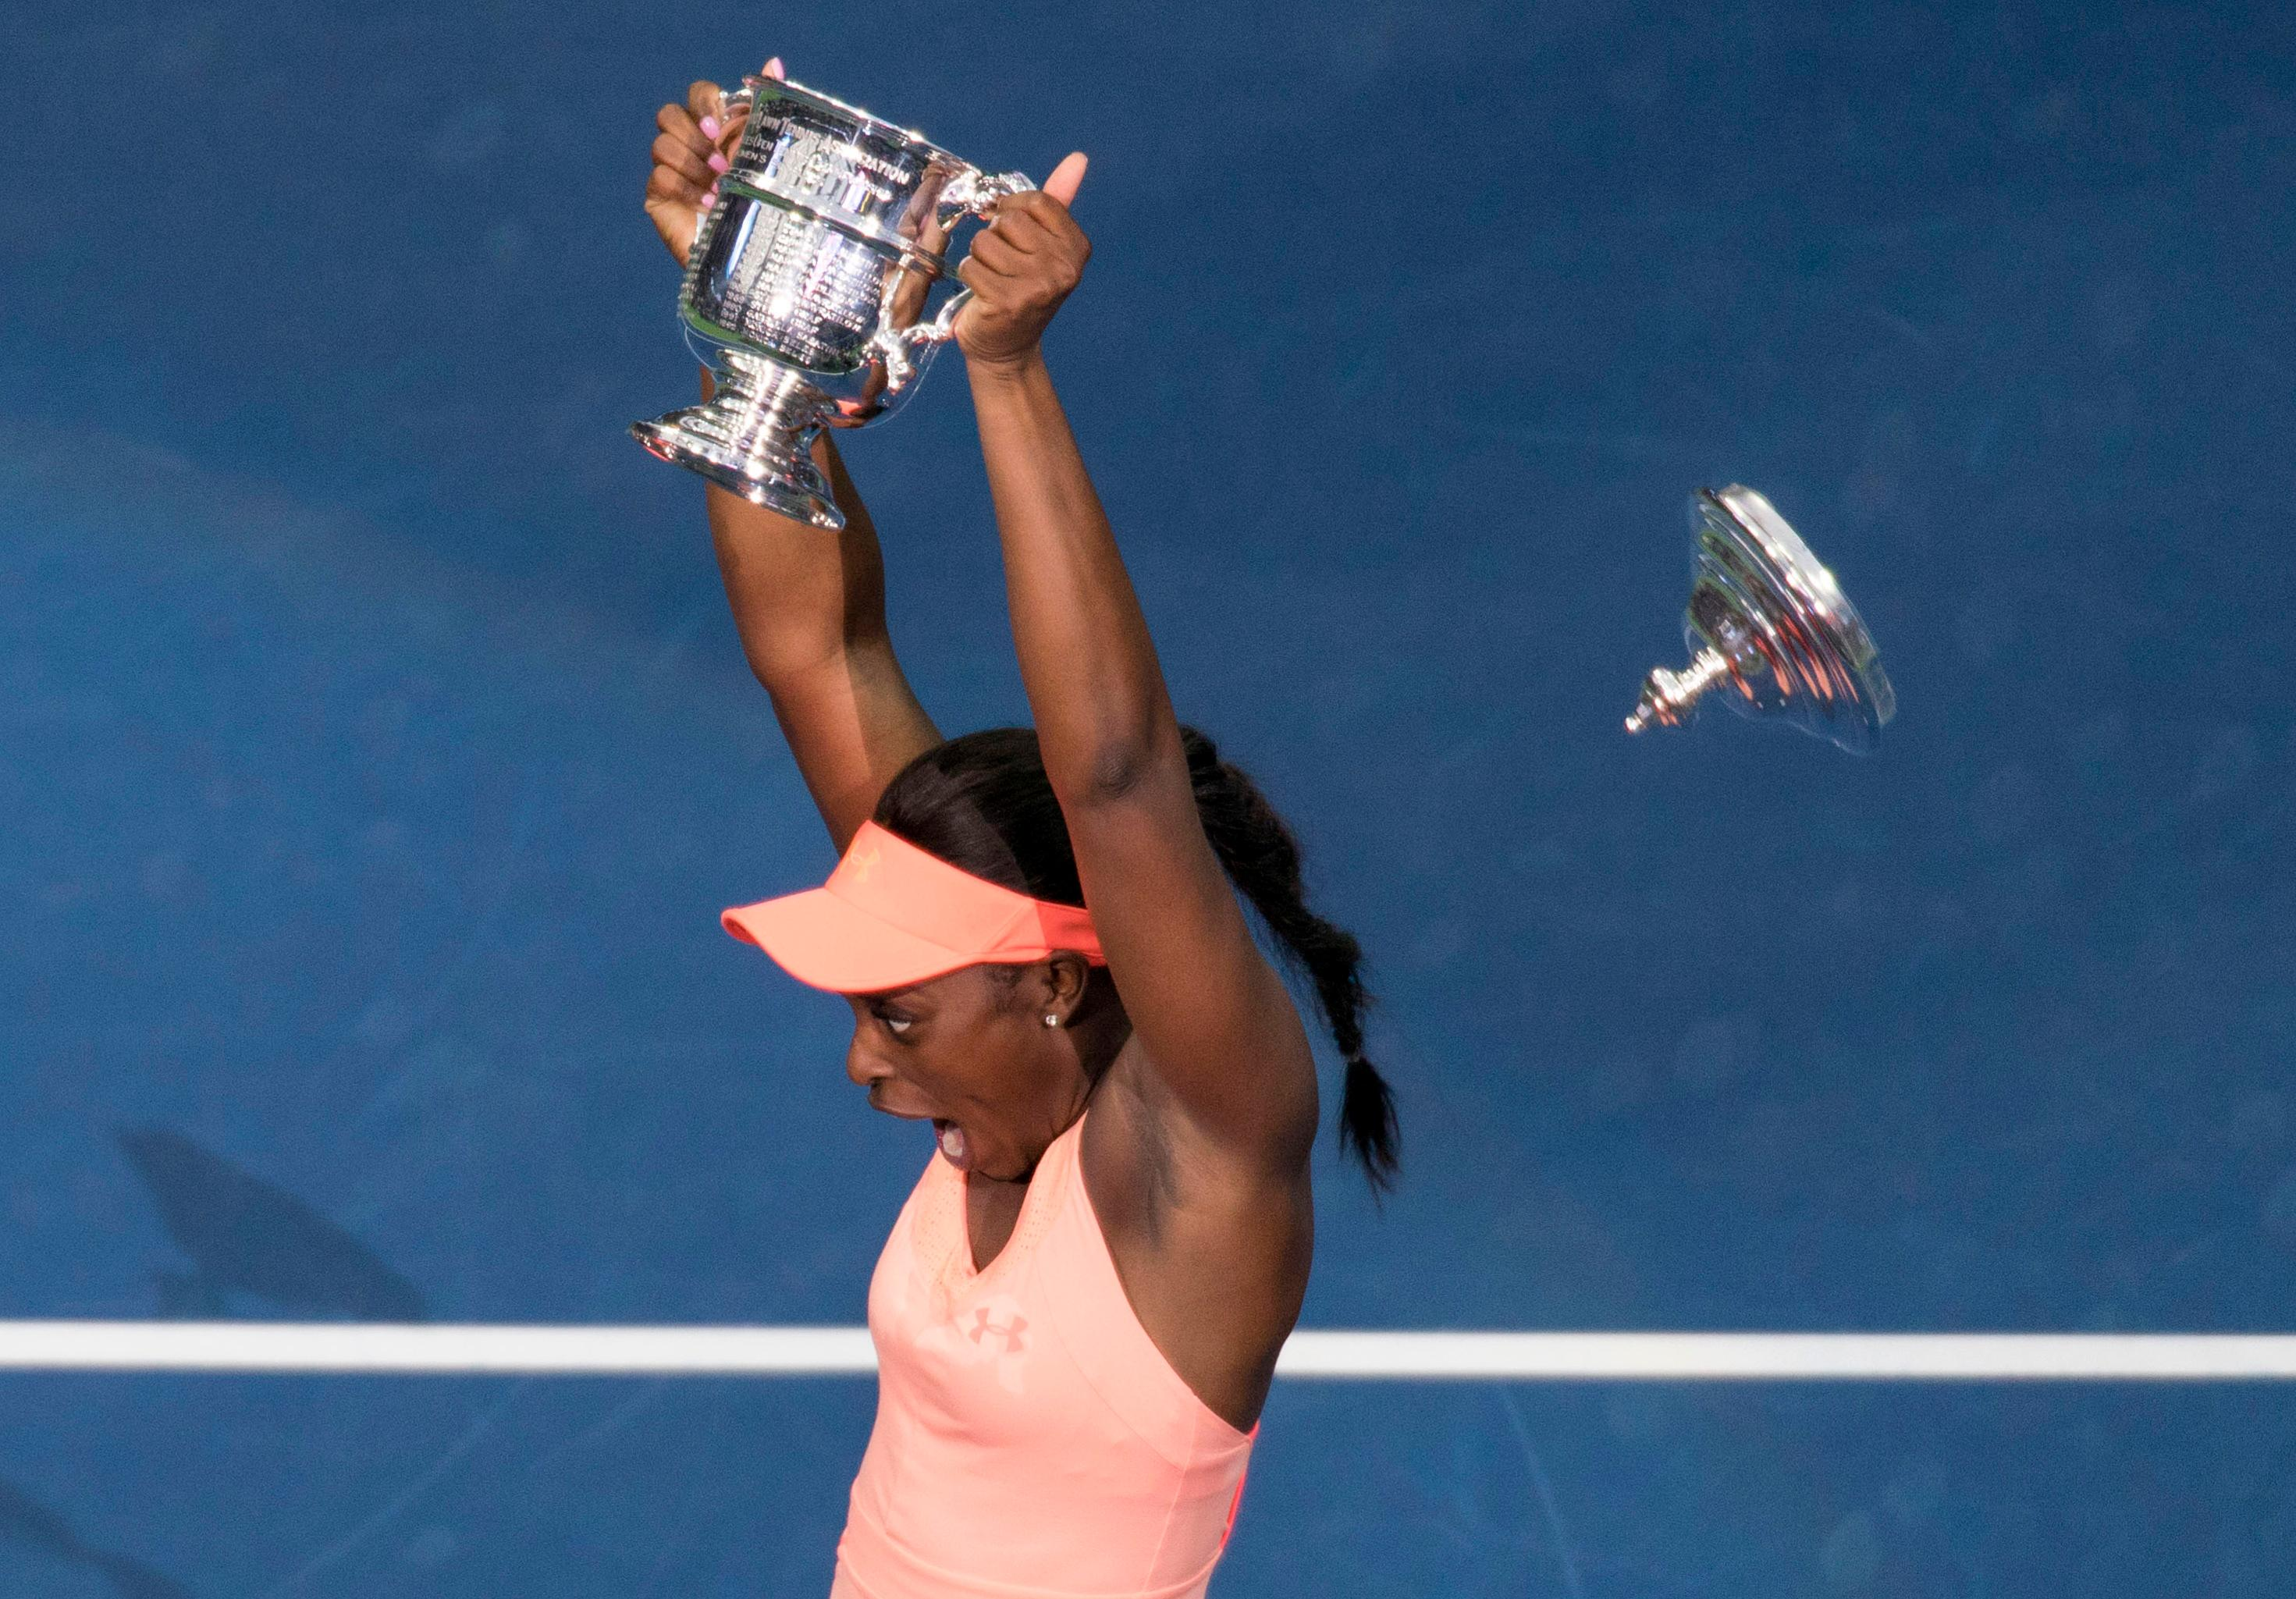 Sloane Stephens, of the United States, reacts as the lid to the championship trophy falls off during a photo app after the women's singles final of the U.S. Open tennis tournament, Saturday, Sept. 9, 2017, in New York. Stephens beat Madison Keys, of the United States to win the championship. (AP Photo/Nick Didlick)